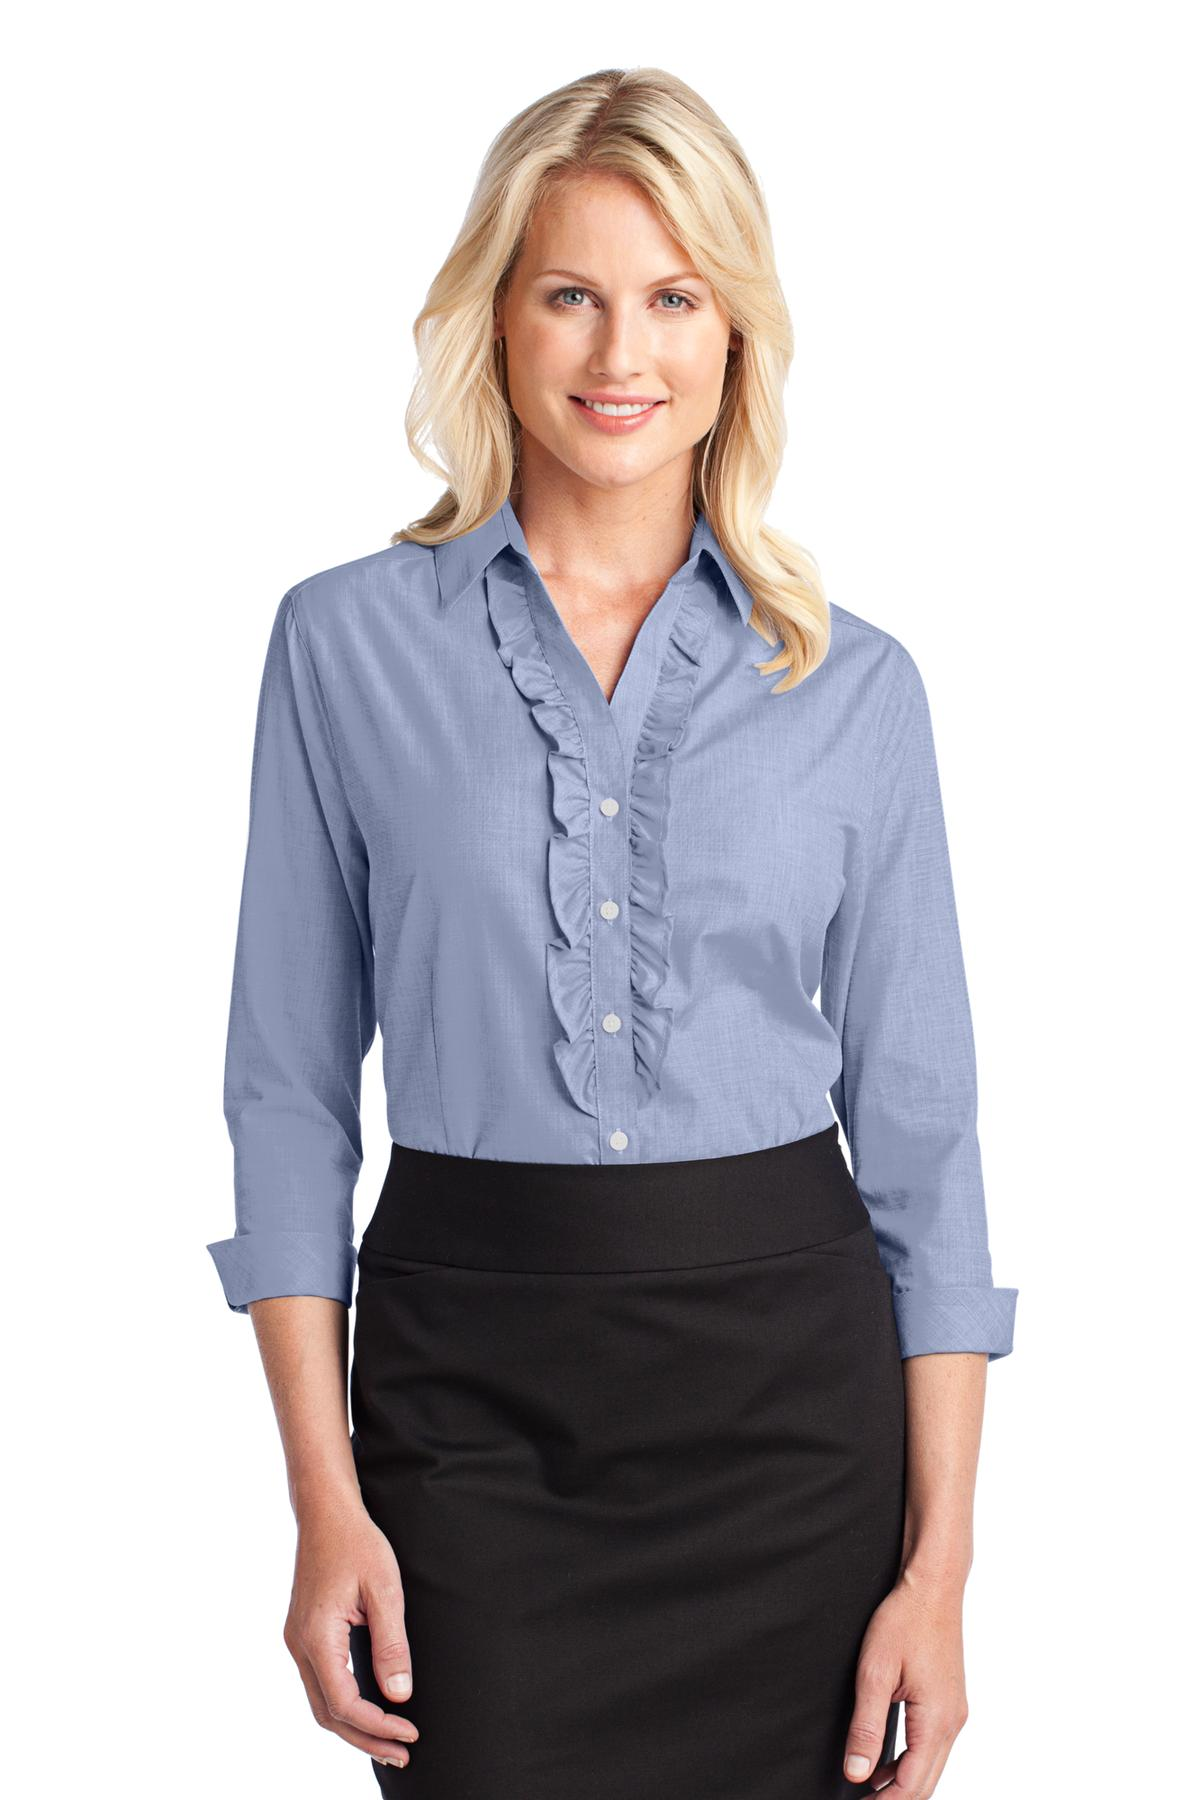 Woven-Shirts-Easy-Care-16